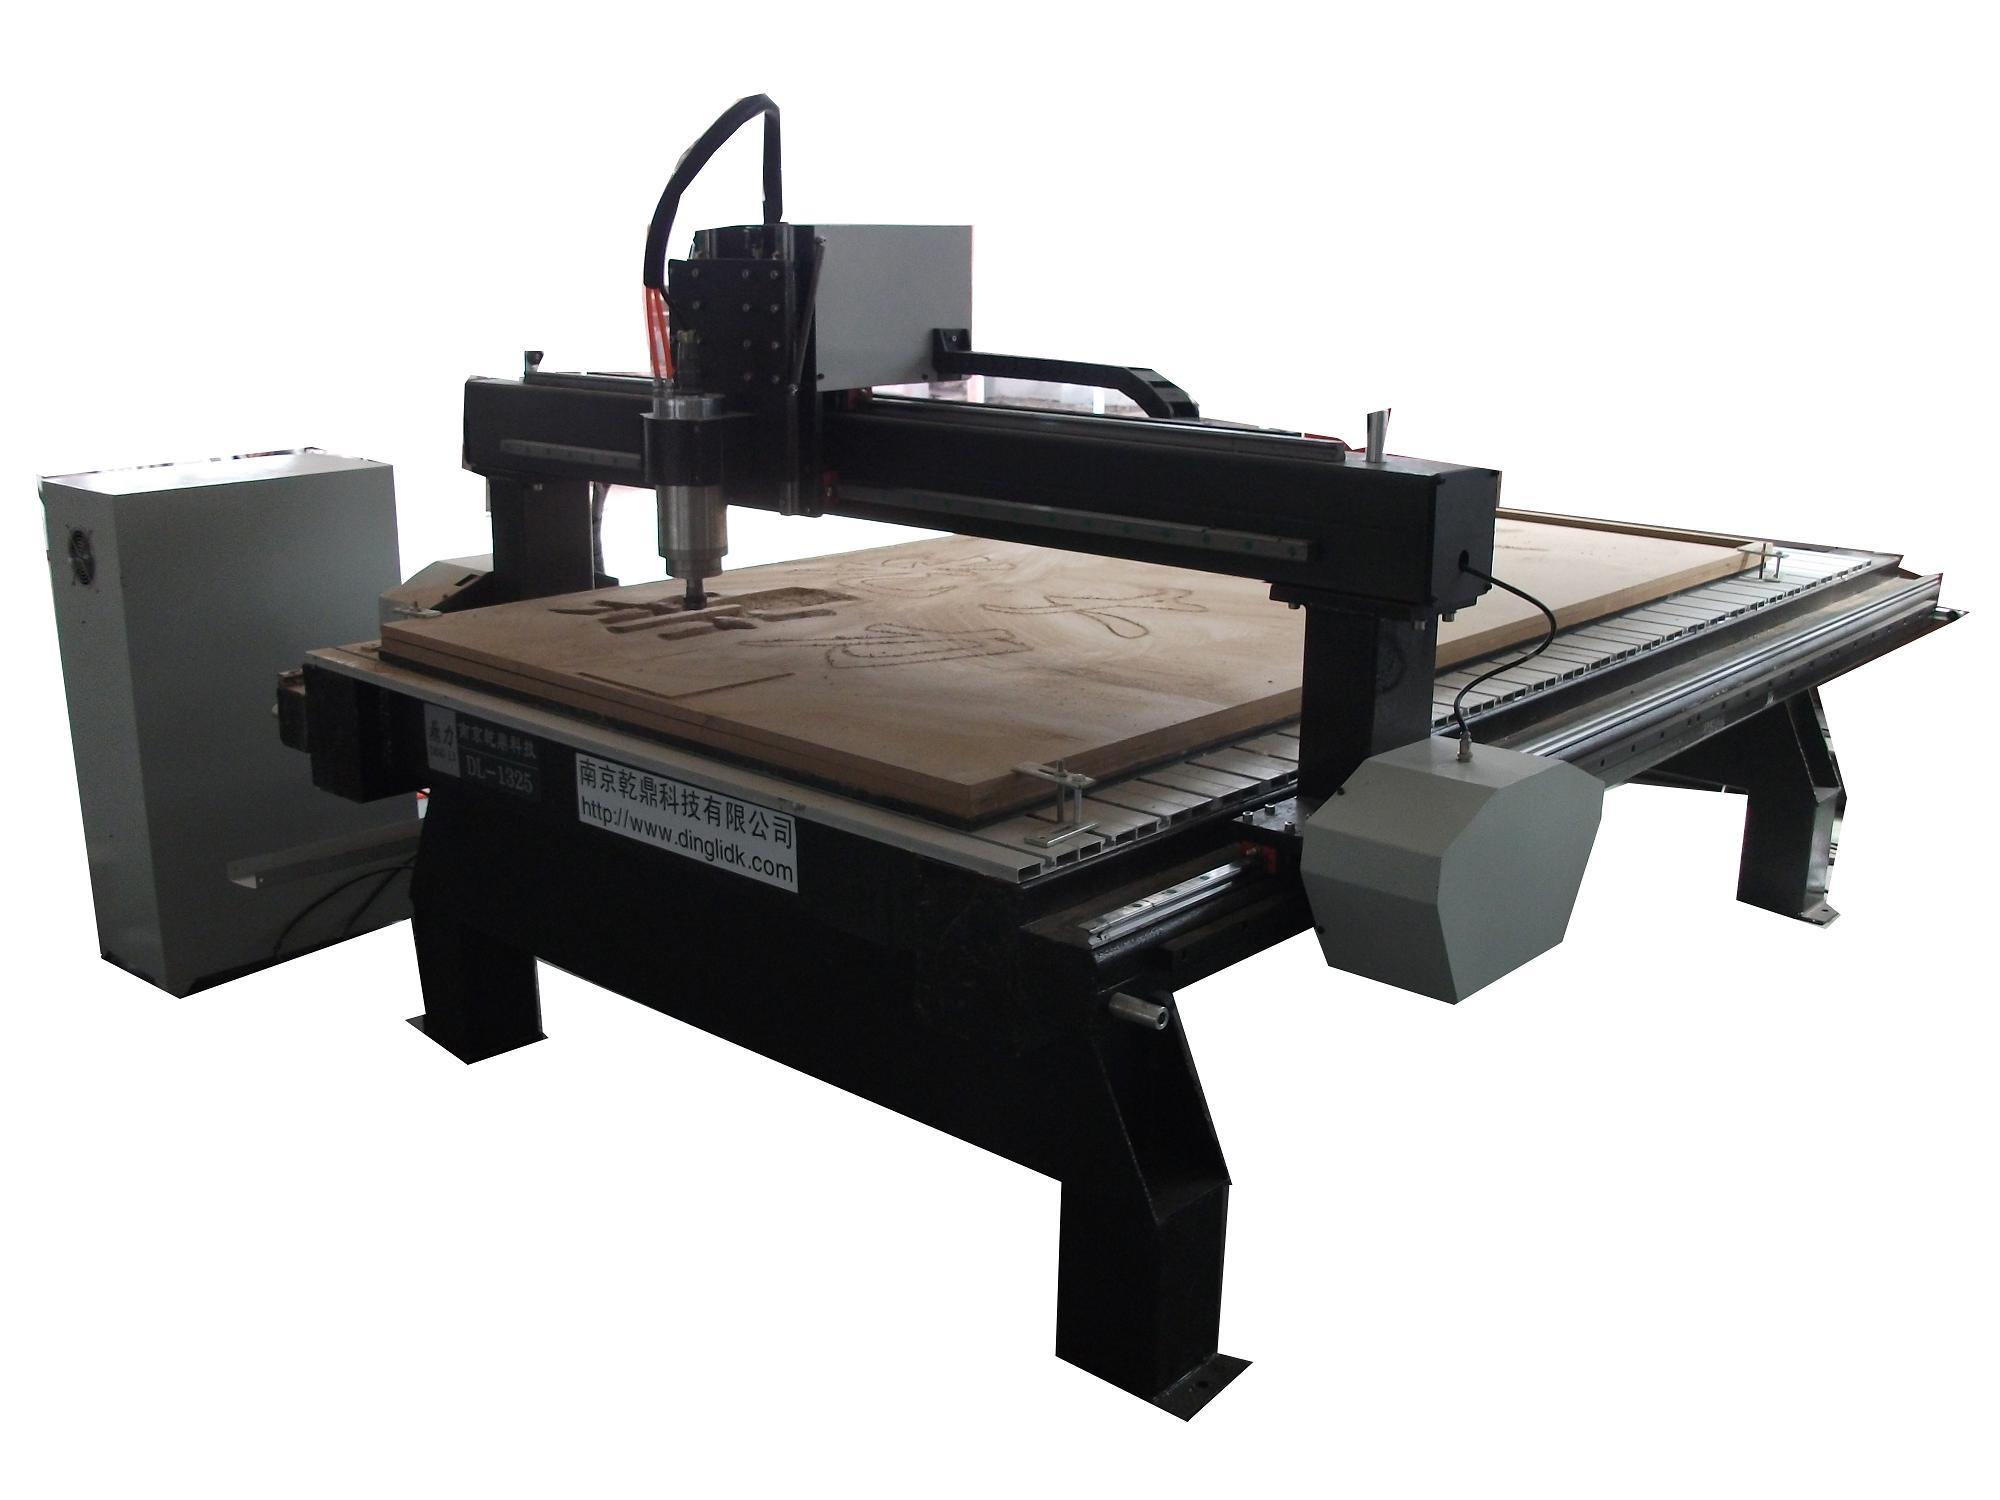 woodworking machines manufacturers in india | Best Woodworking Plans